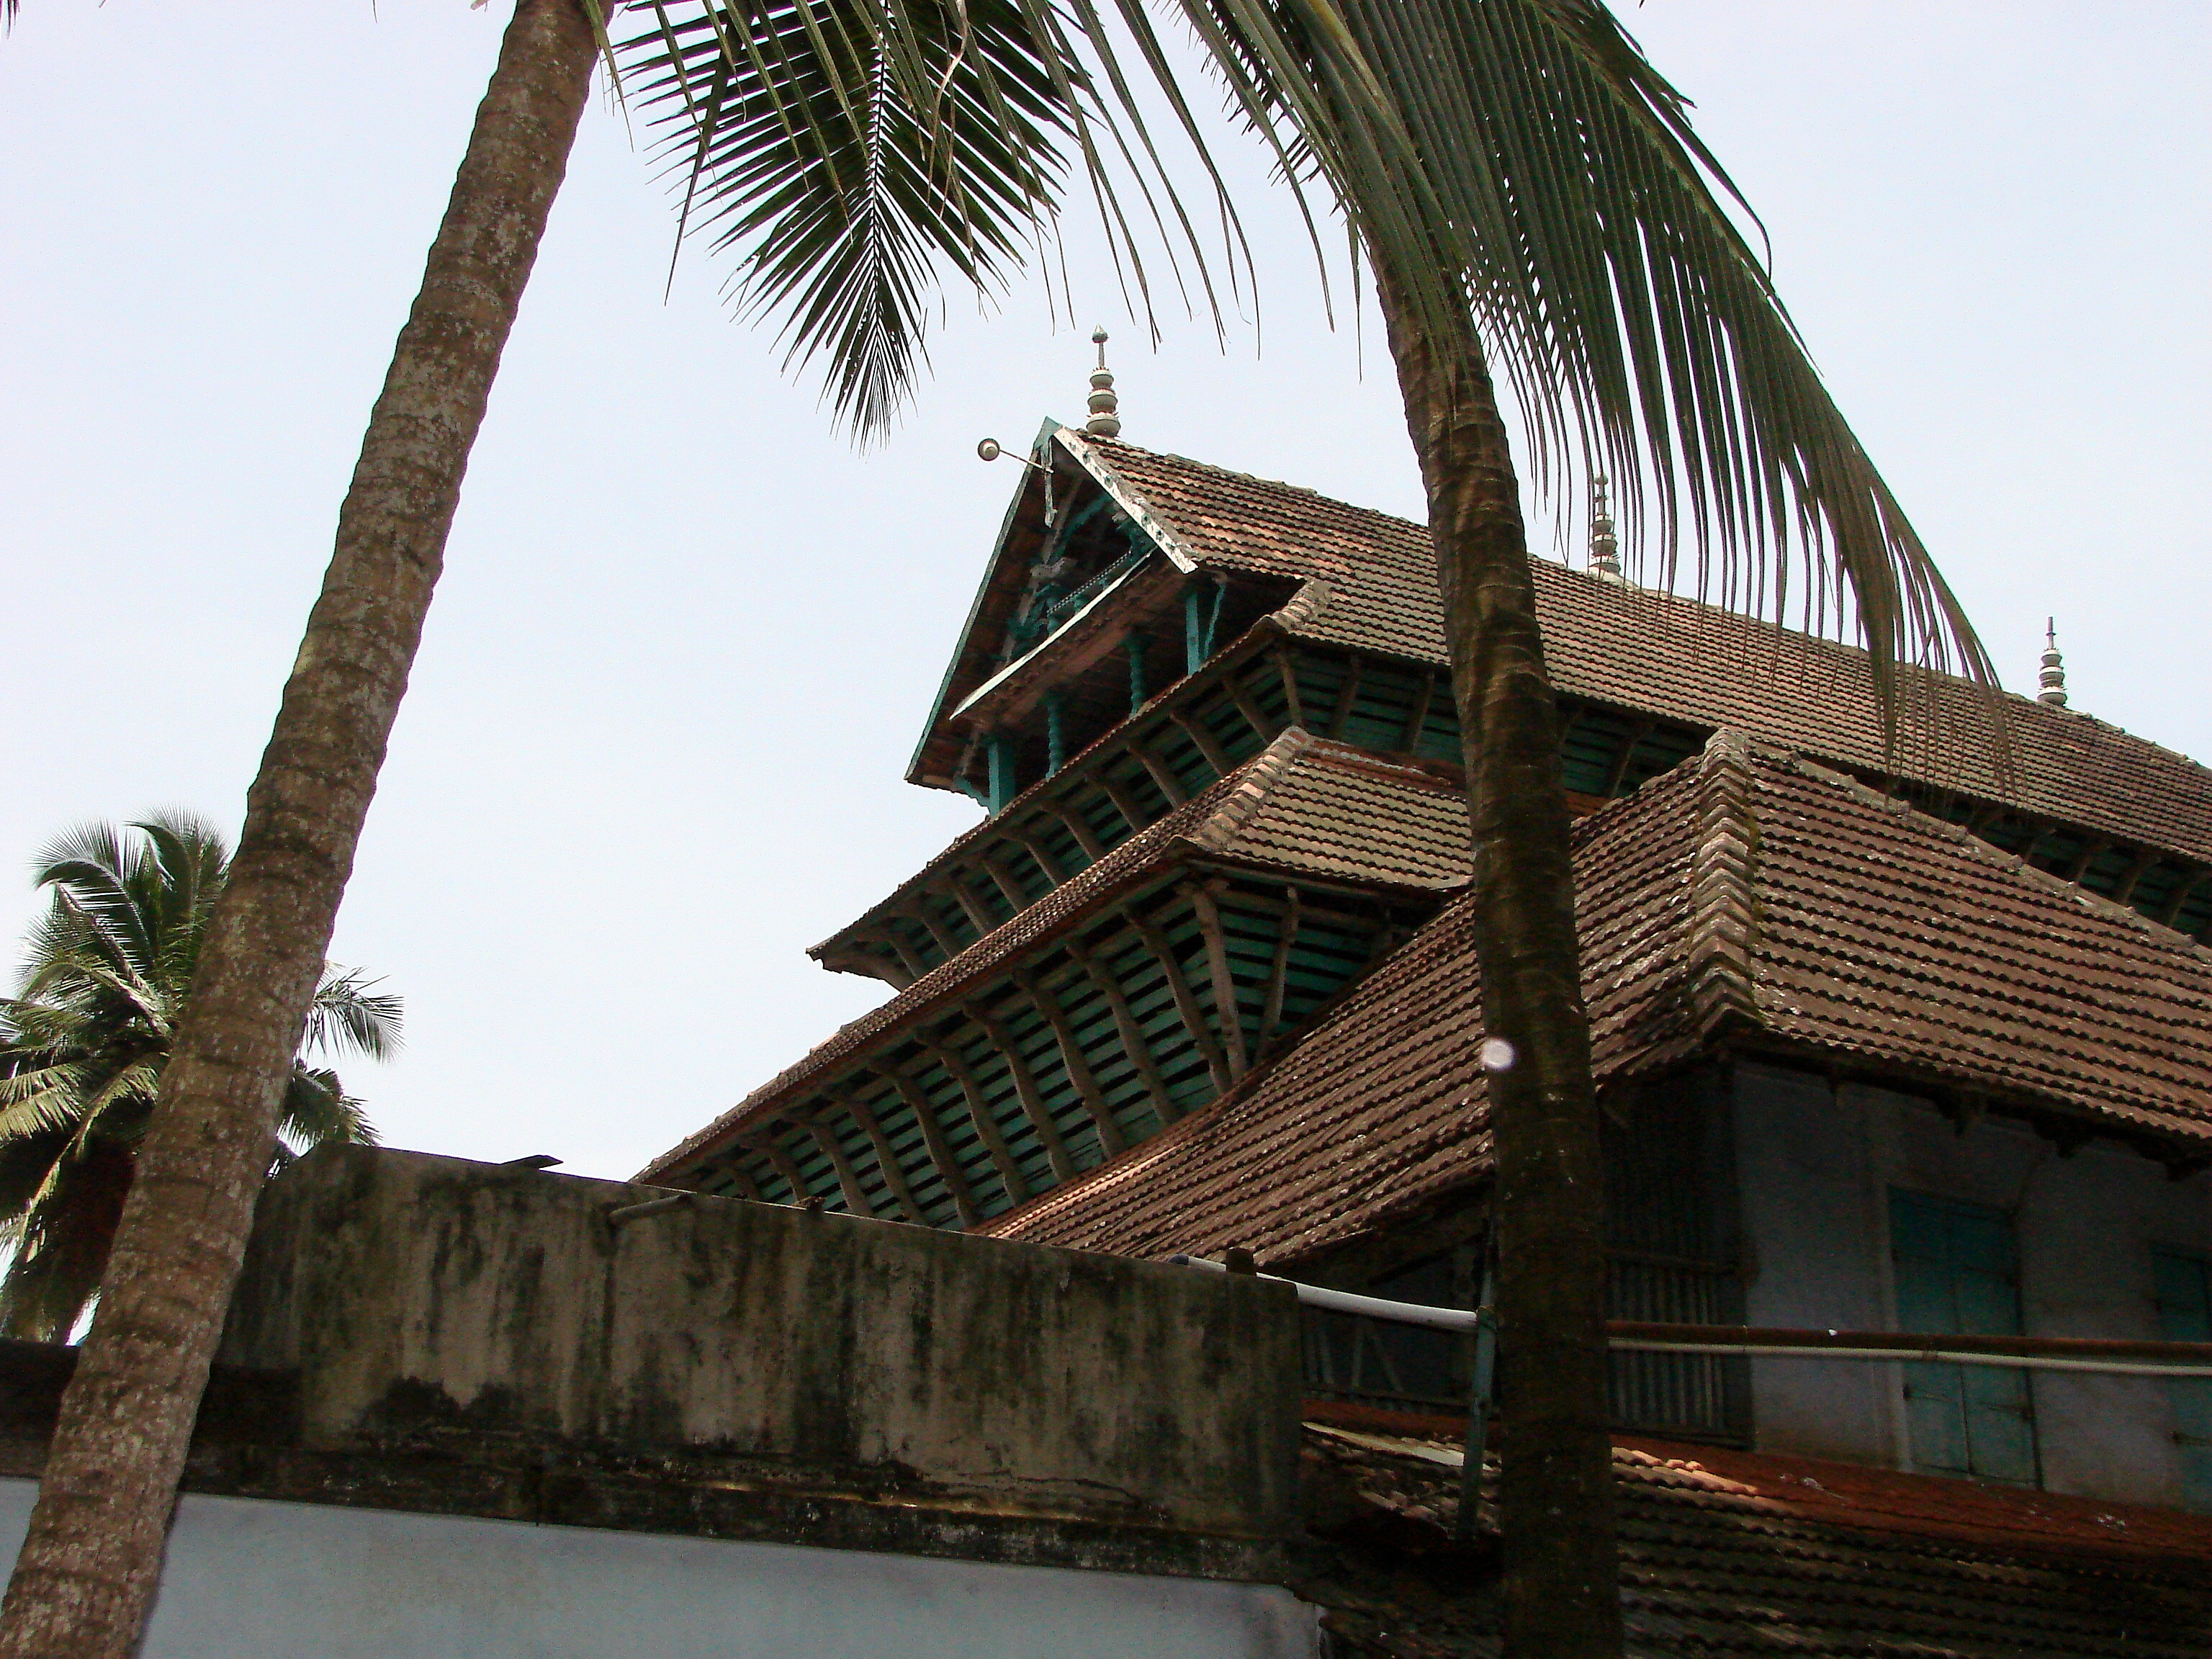 Architecture of Kerala - Wikipedia, the free encyclopedia